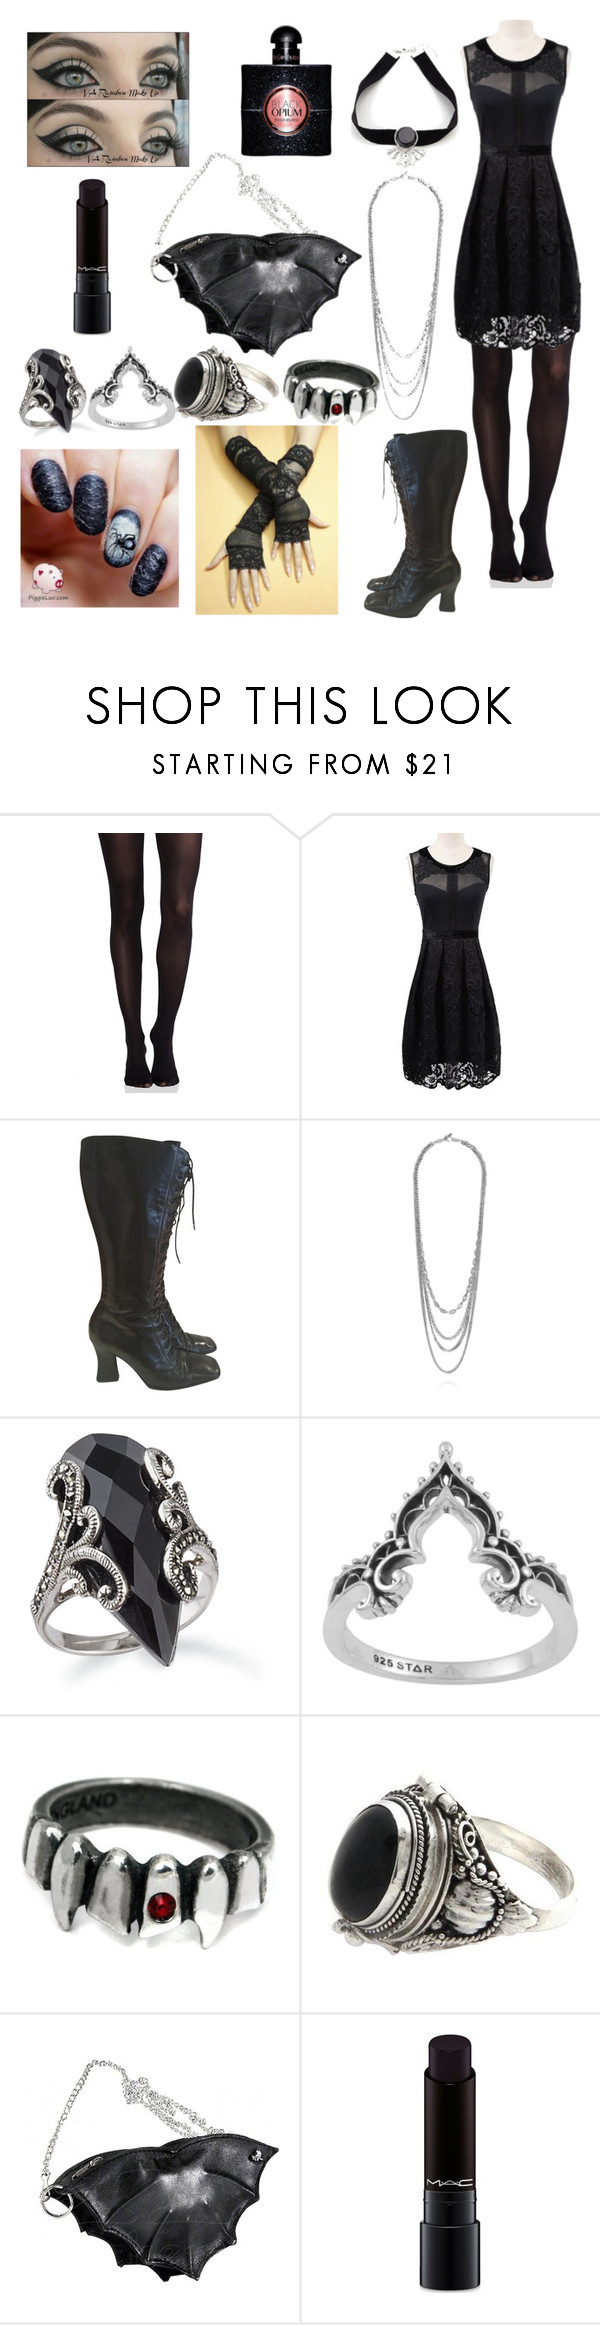 """""""casual bat"""" by banasheeanni ❤ liked on Polyvore featuring SPANX, Prada, NOVICA, MAC Cosmetics and Yves Saint Laurent"""